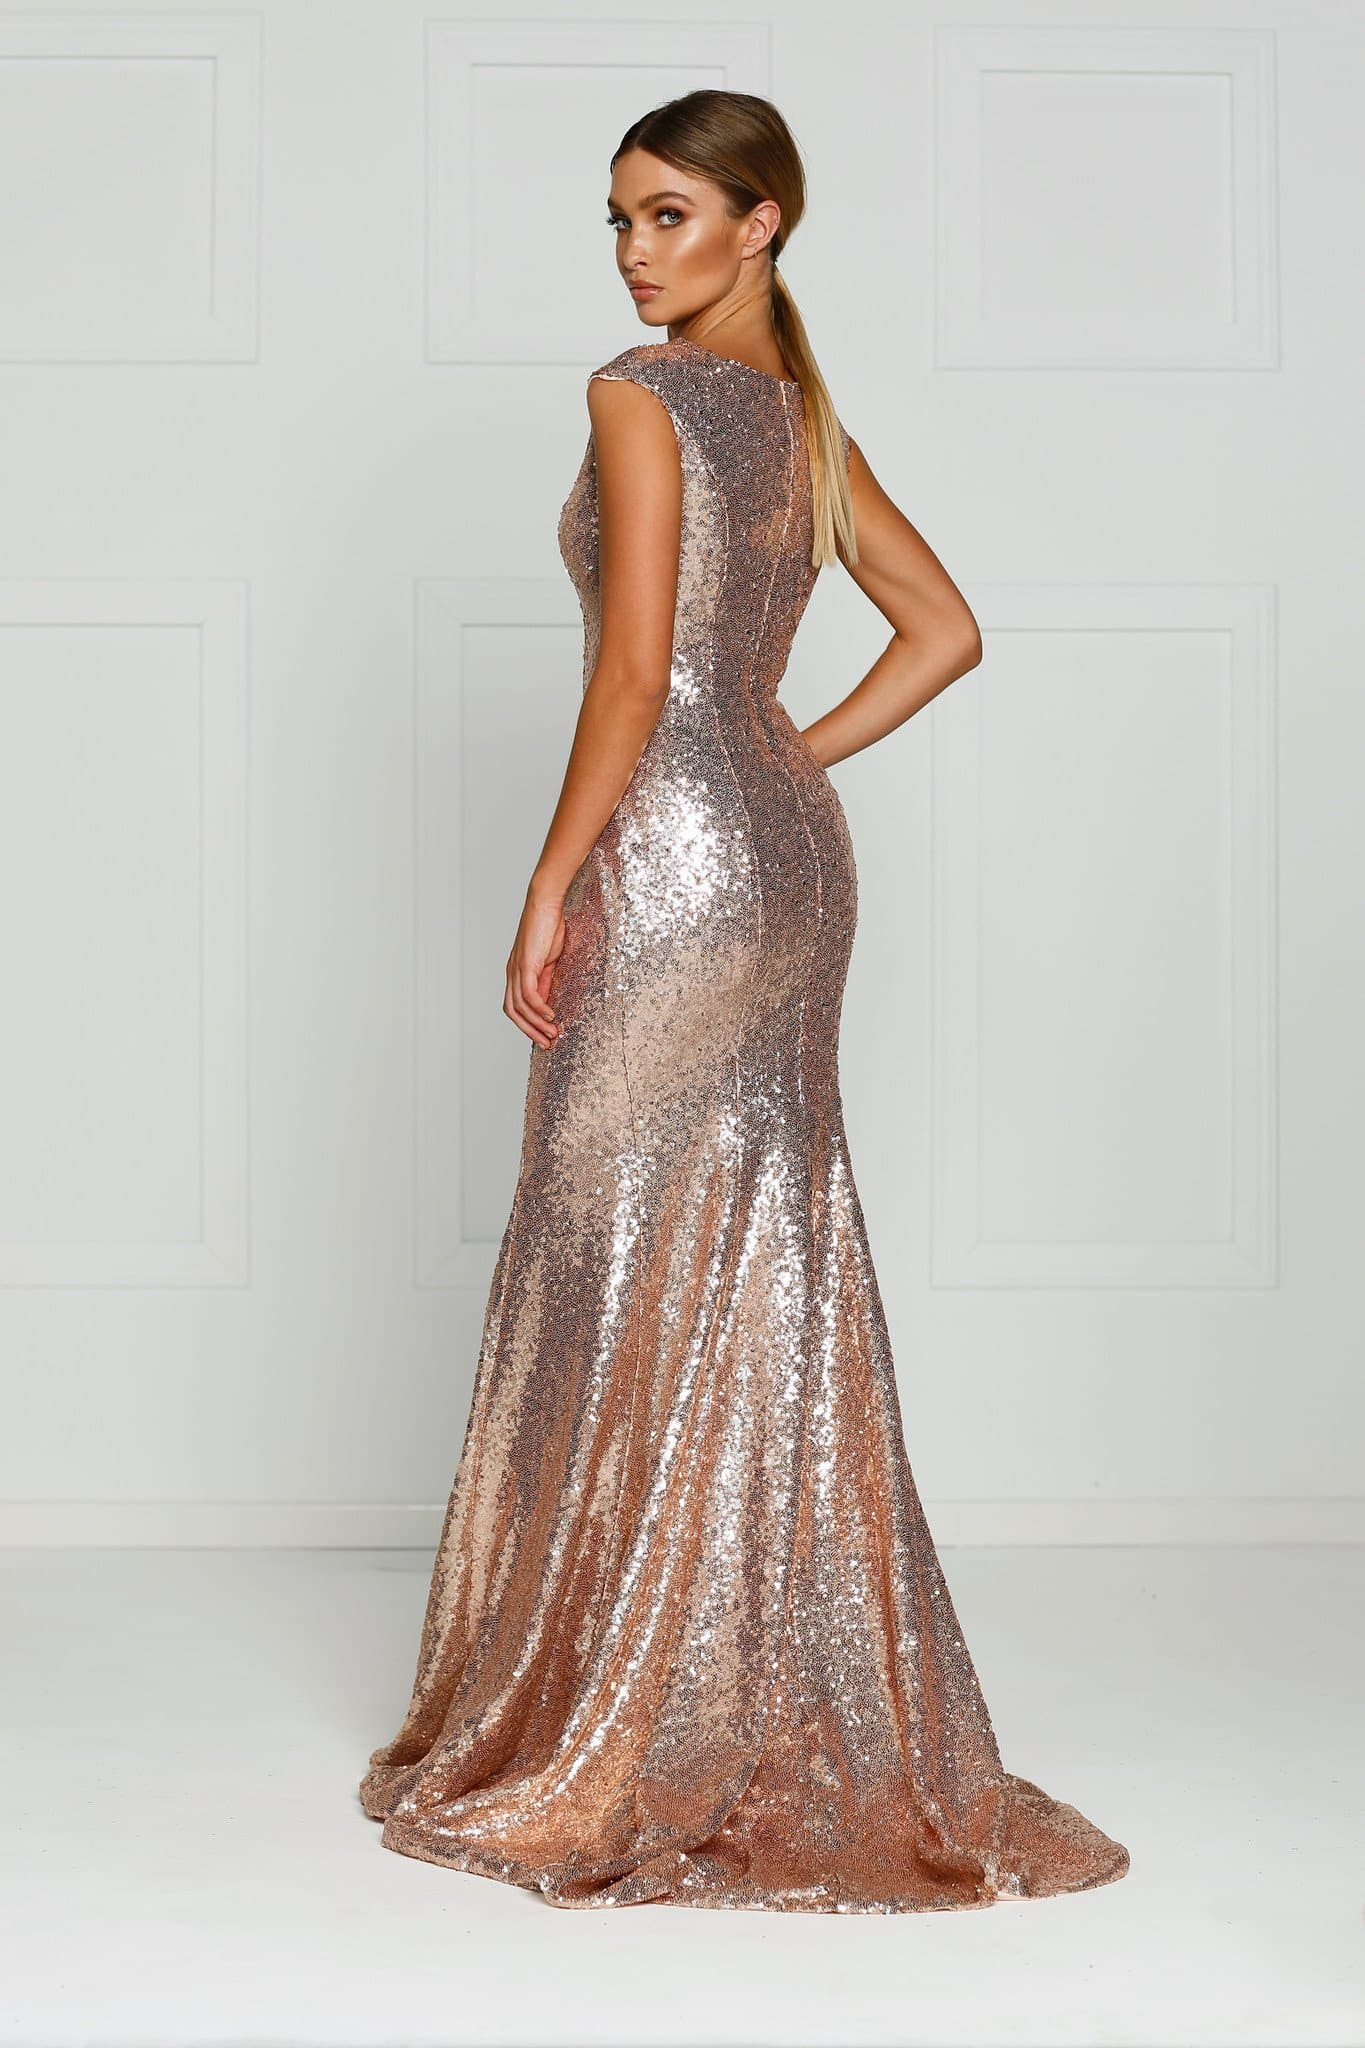 A&N Lila - Rose Gold Sequins Formal Dress with High Neck and Side Slit